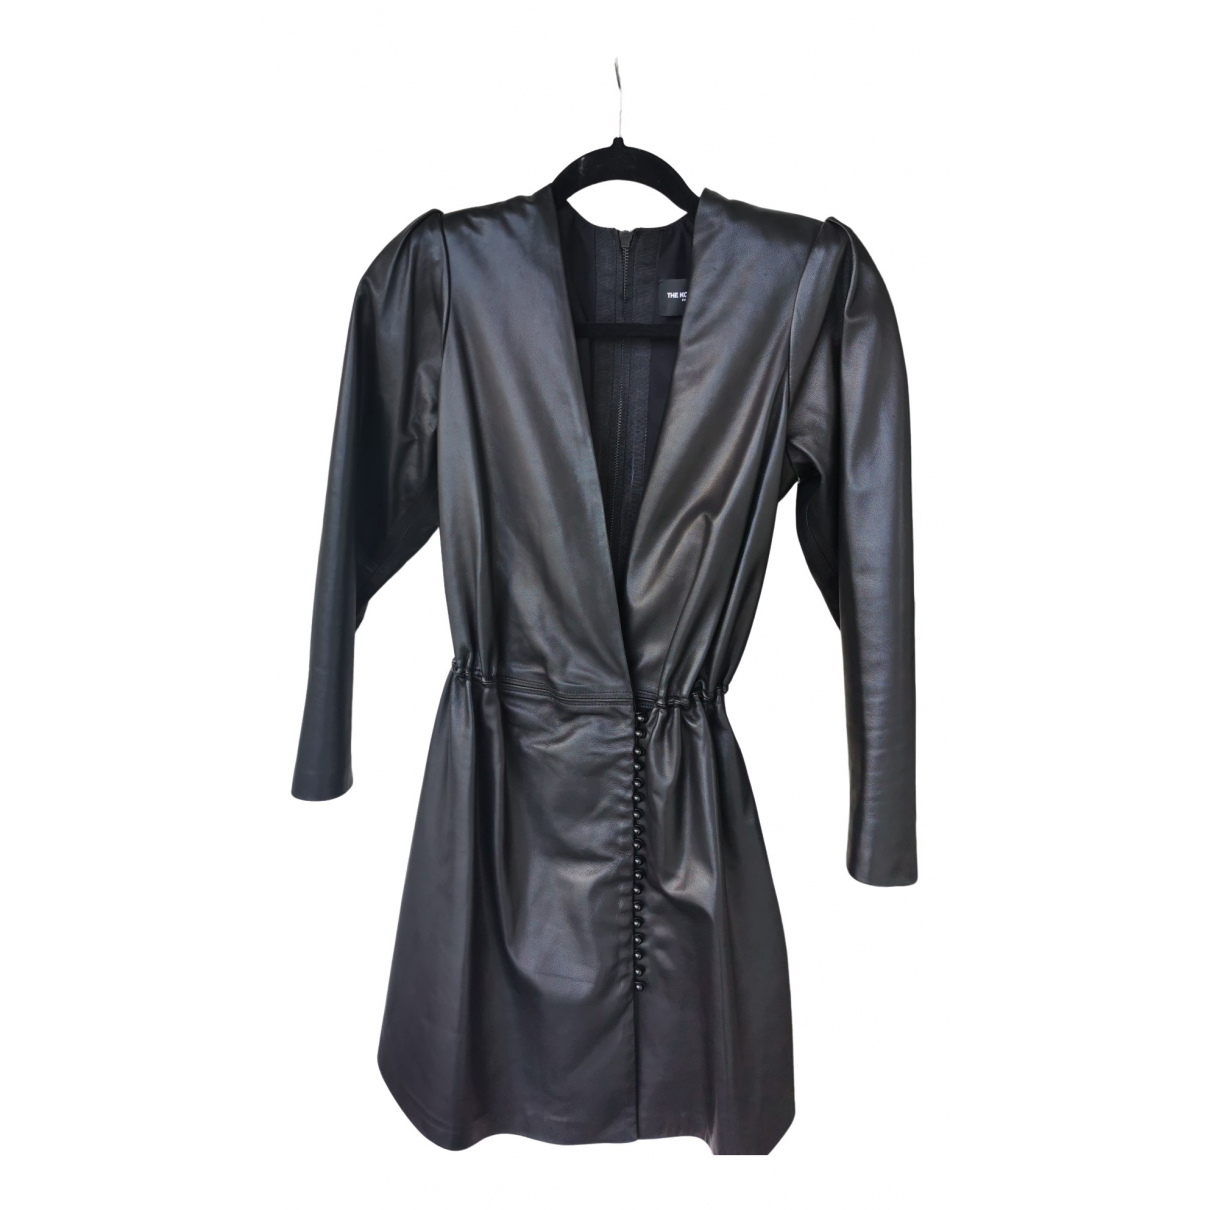 The Kooples Fall Winter 2019 Black Leather dress for Women 36 FR